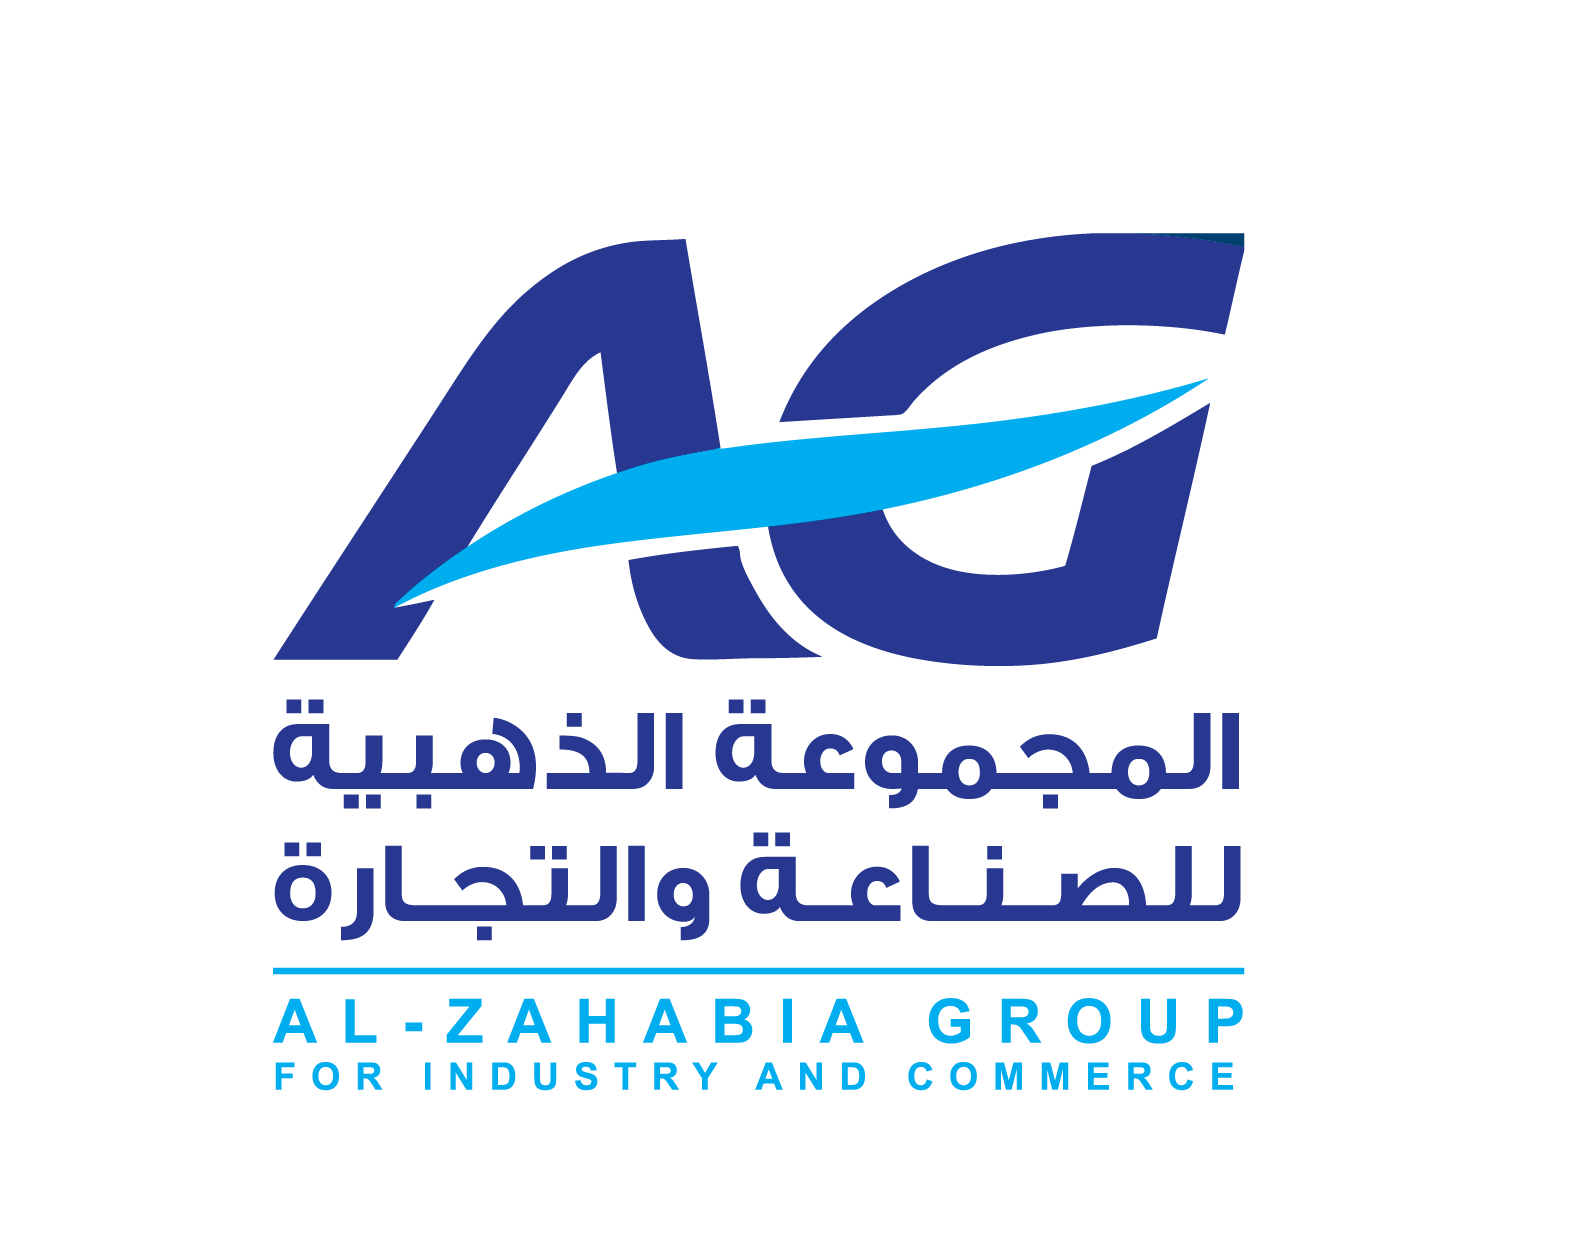 AL ZAHABIA GROUP FOR INDUSTRY & COMMERCE